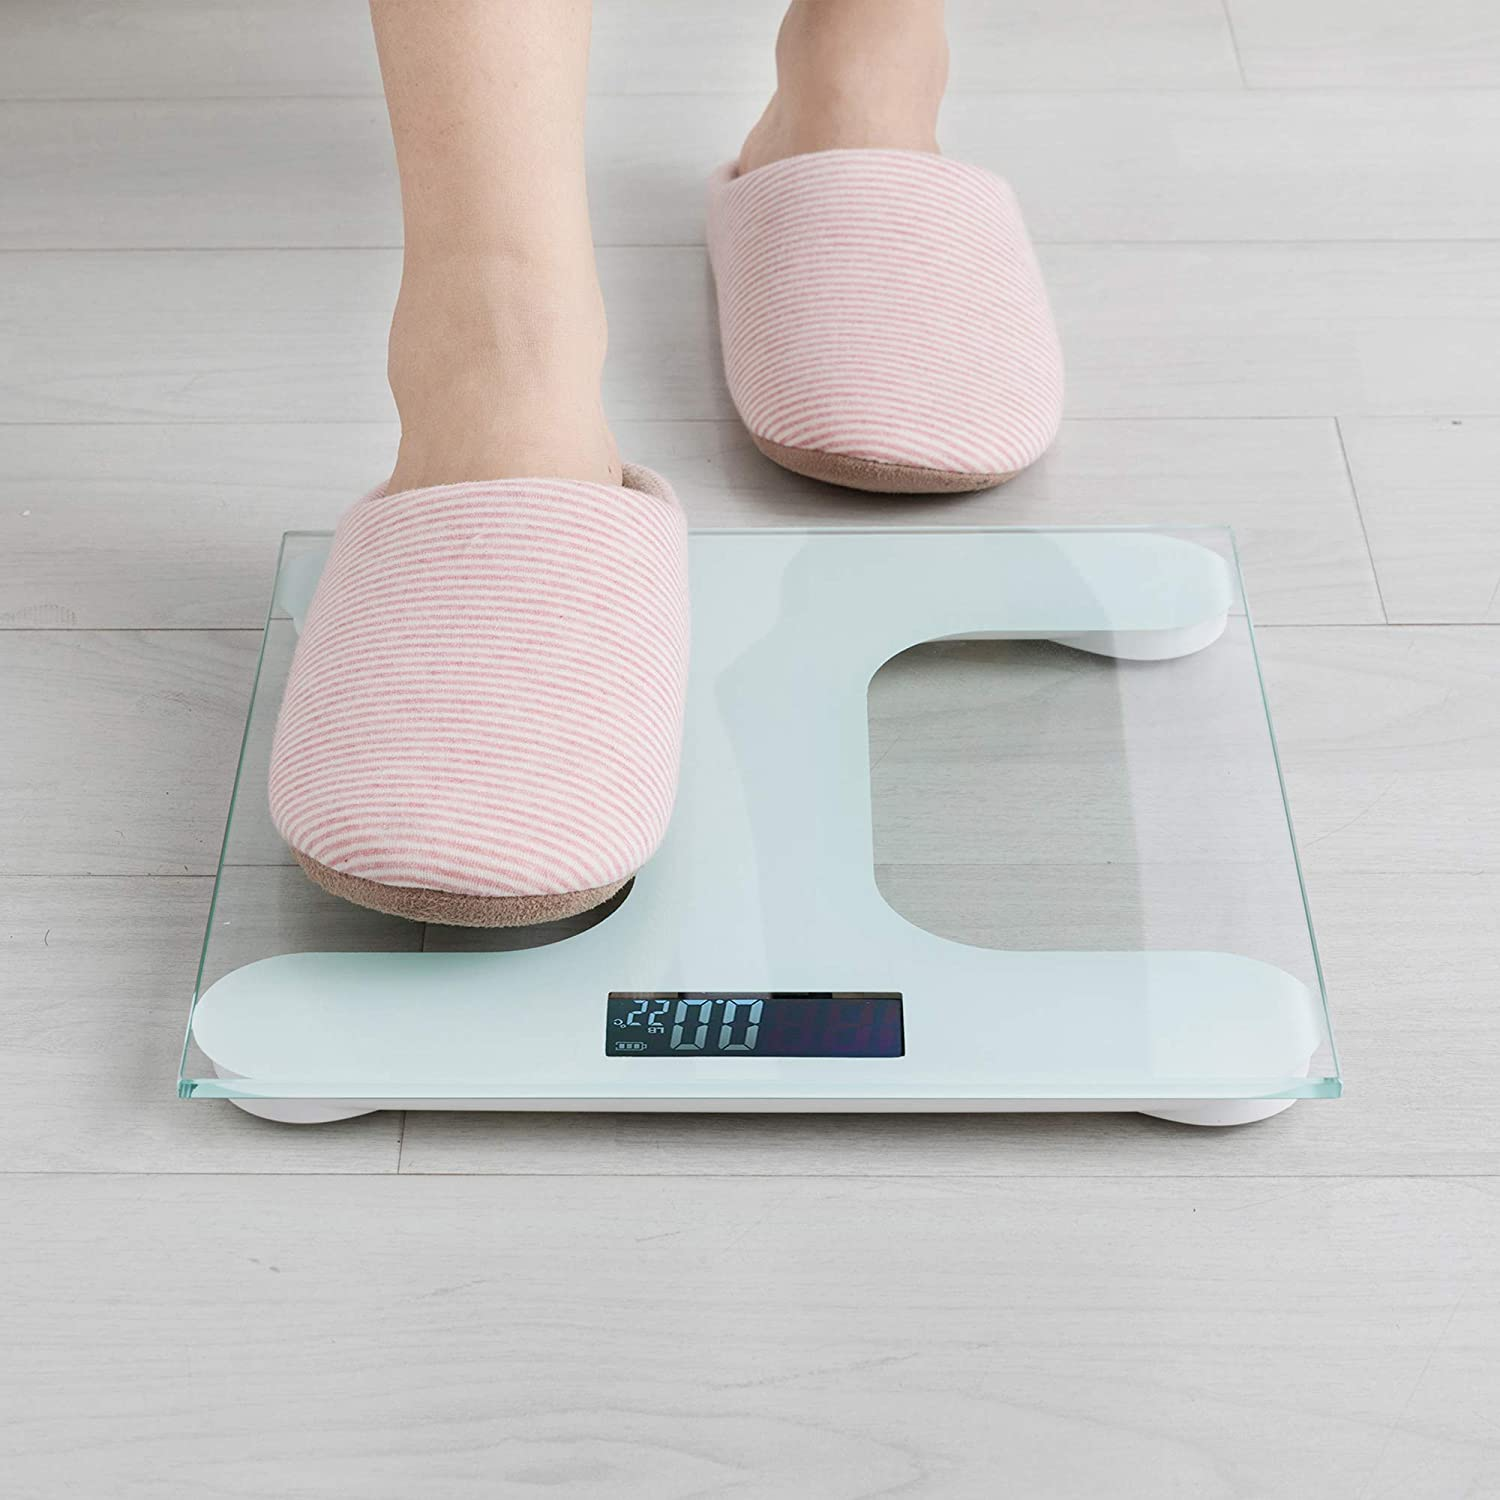 Precision Accuracy at 0.2 lb 6001 C3 White Digital Body Weight Scale with Step-on Technology Wide Range of 400 lb Large Glass Top